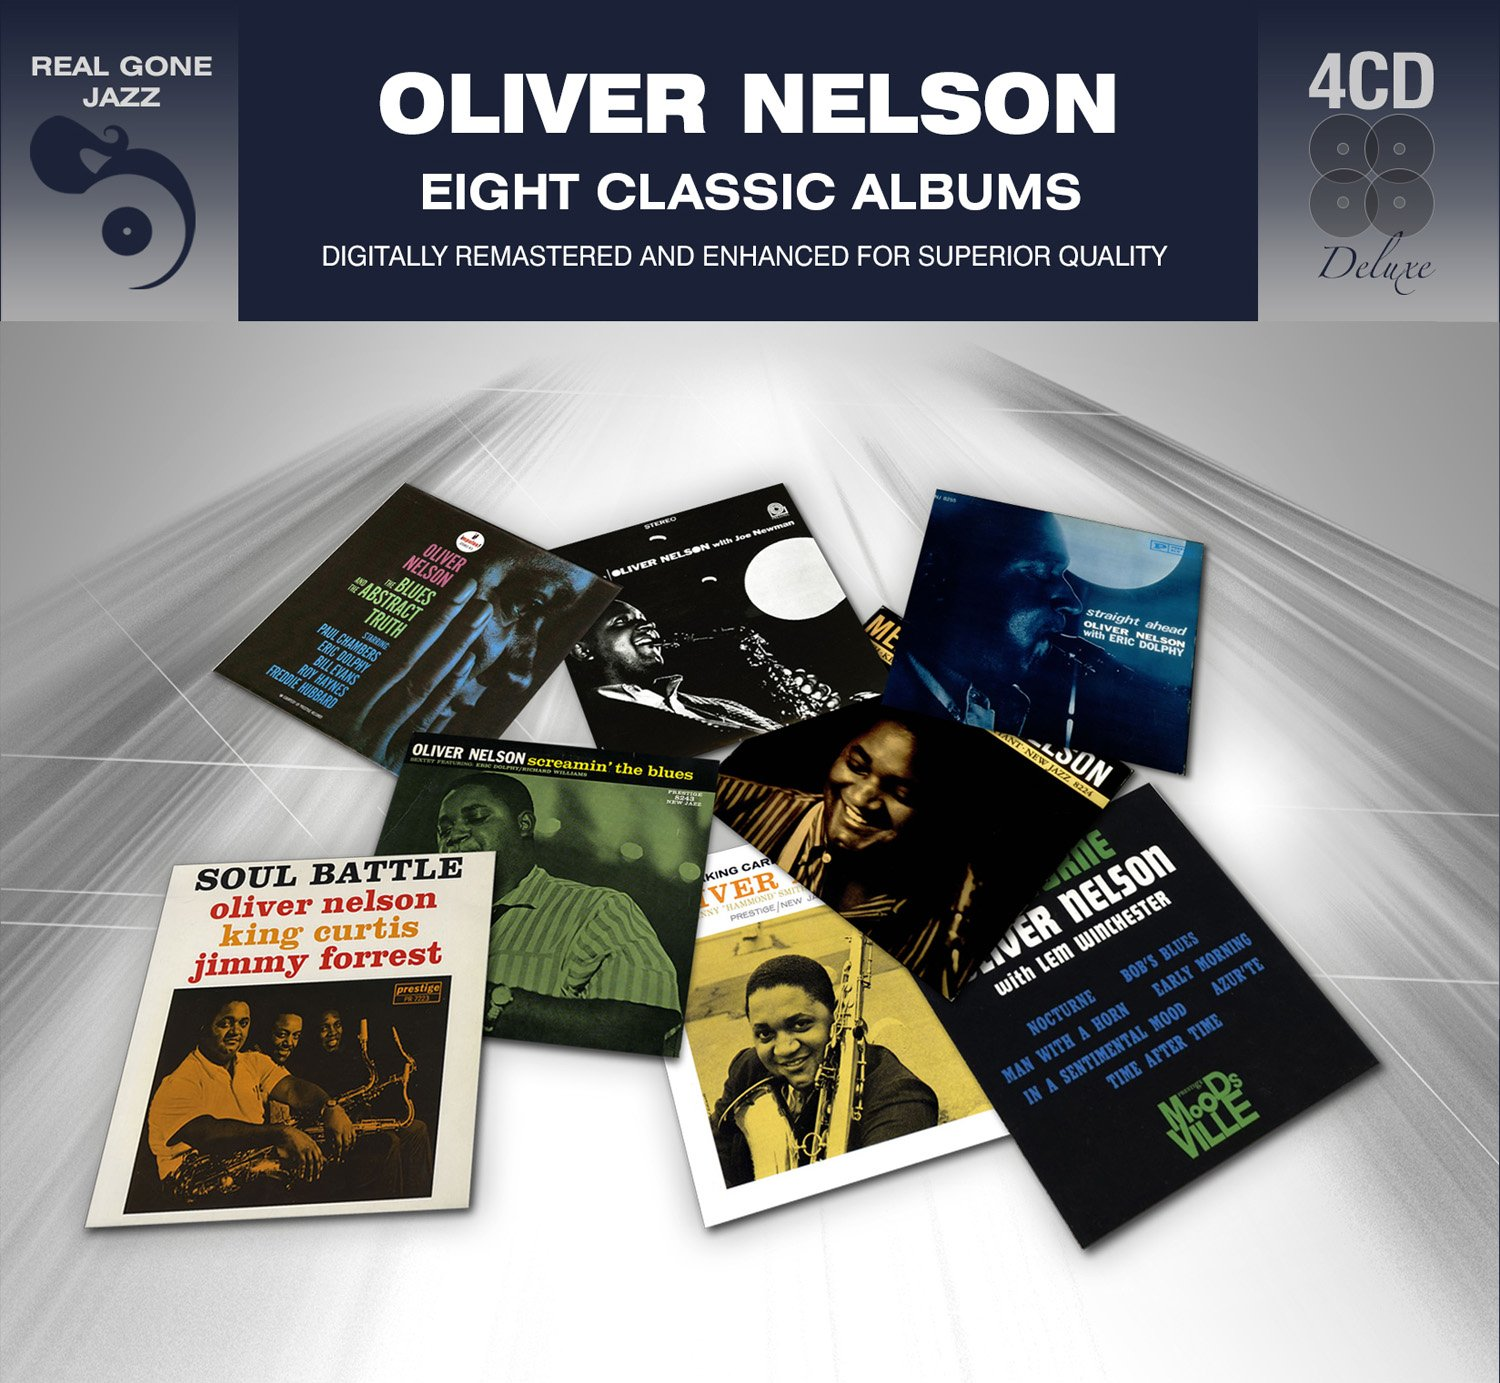 Oliver Nelson - 8 Classic Albums - Oliver Nelson - Amazon.com Music